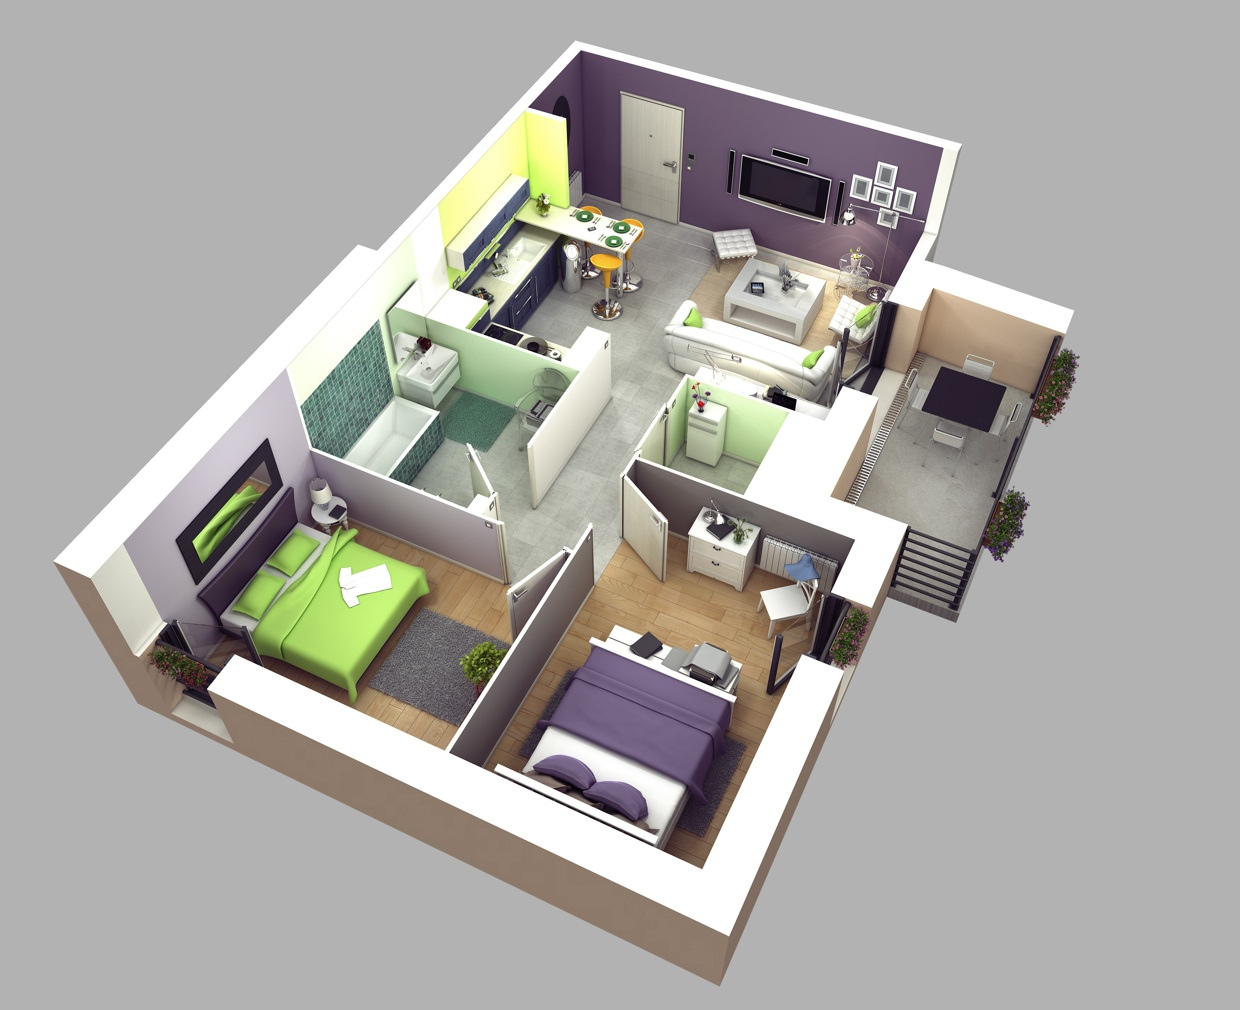 Small Apartment Interior Design Plans 2 bedroom apartment/house plans